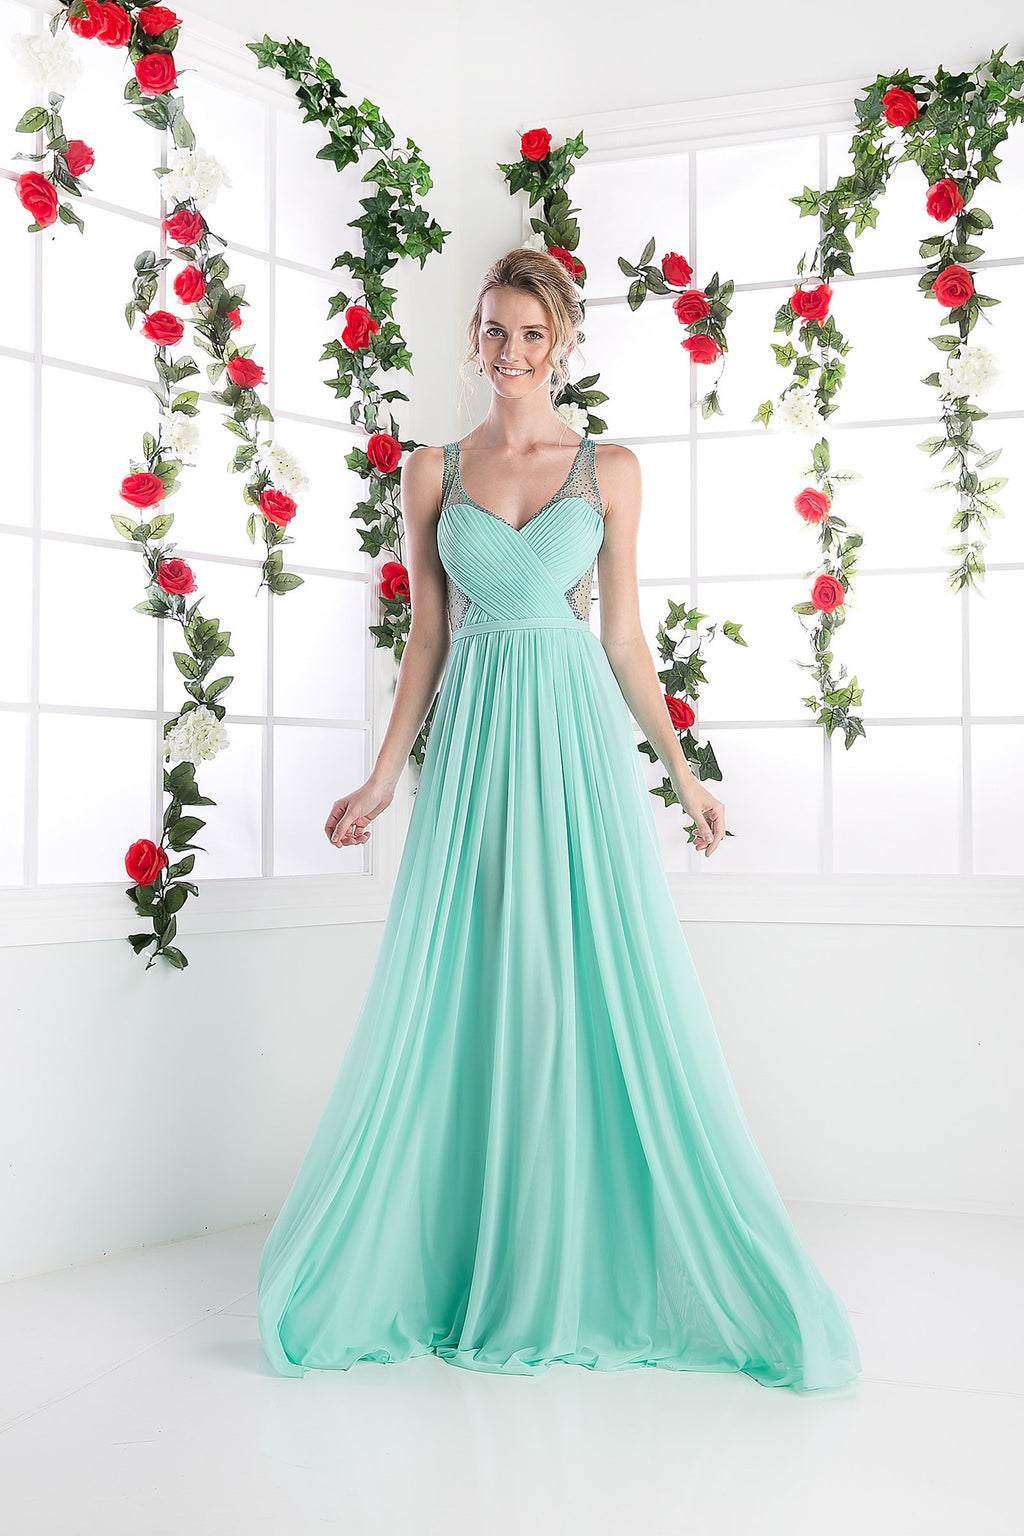 LONG CHIFFON DRESS WITH CRYSTAL STRAPS ON SHEER STYLE #CND5061 - NORMA REED - 1